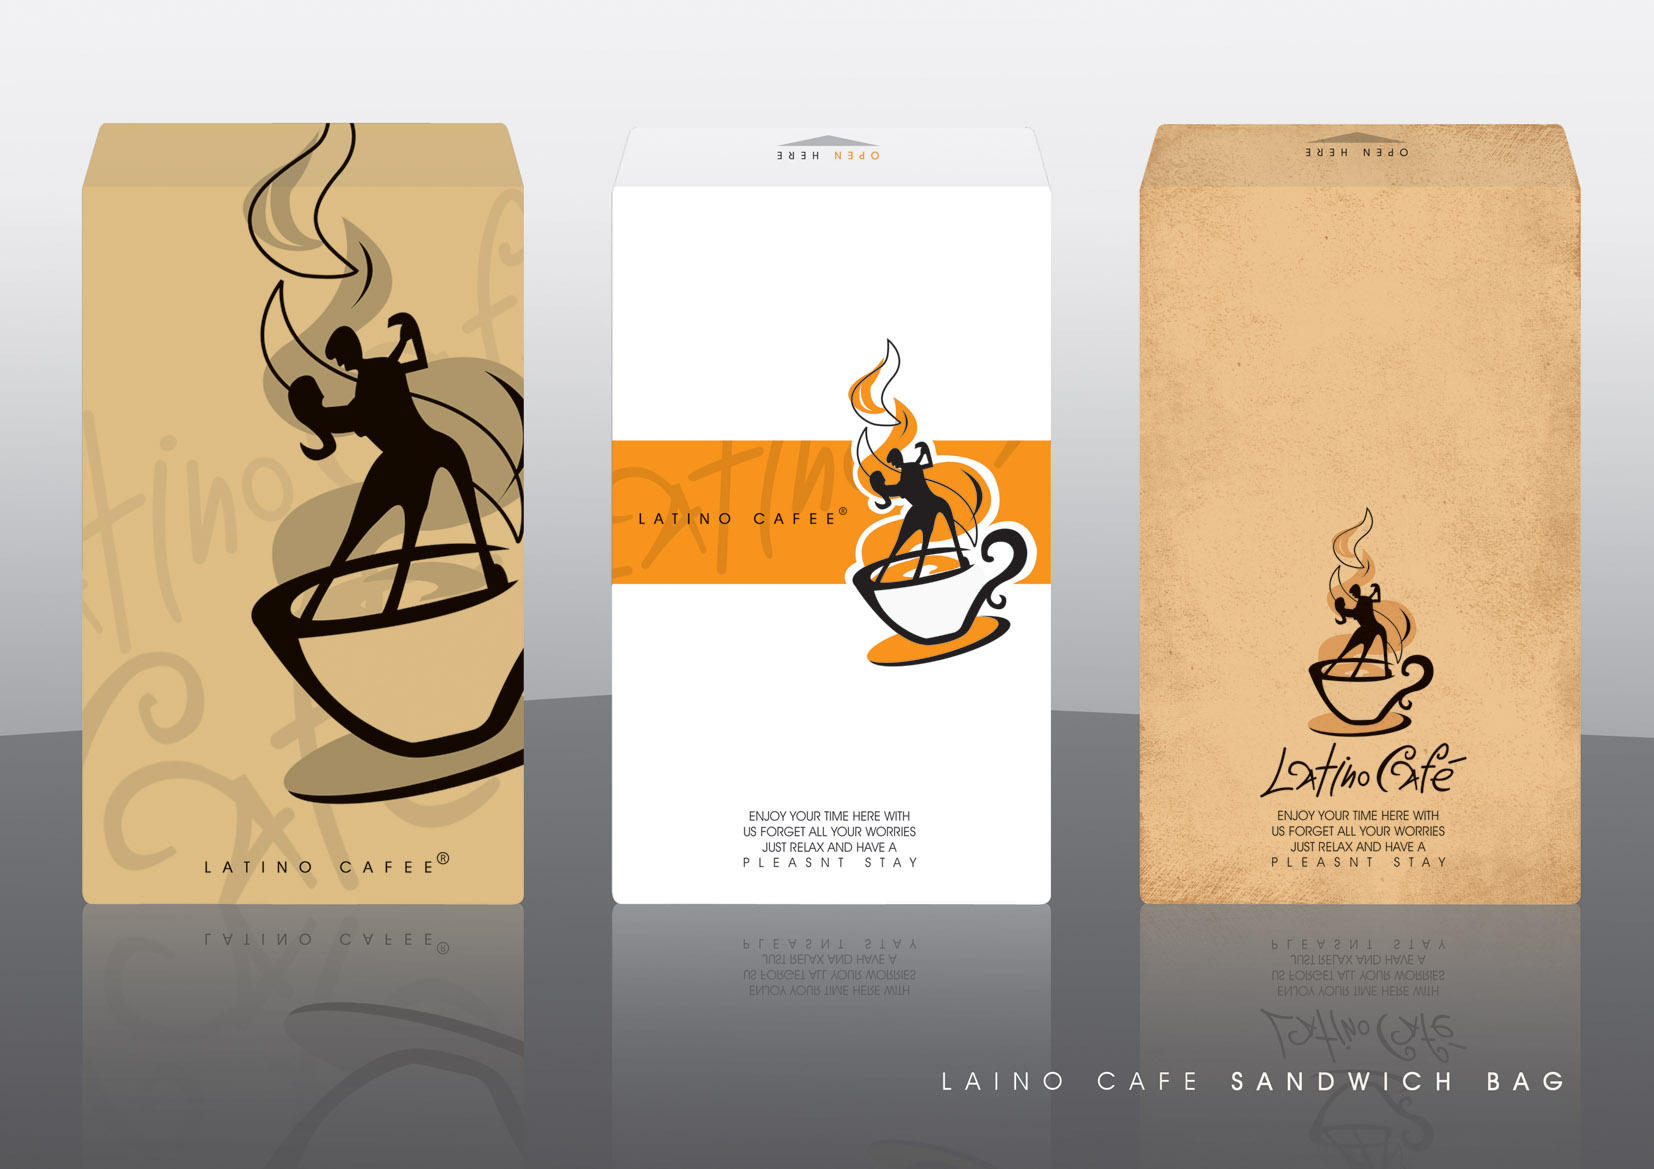 latino cafe sandwich bag by ramywafaa